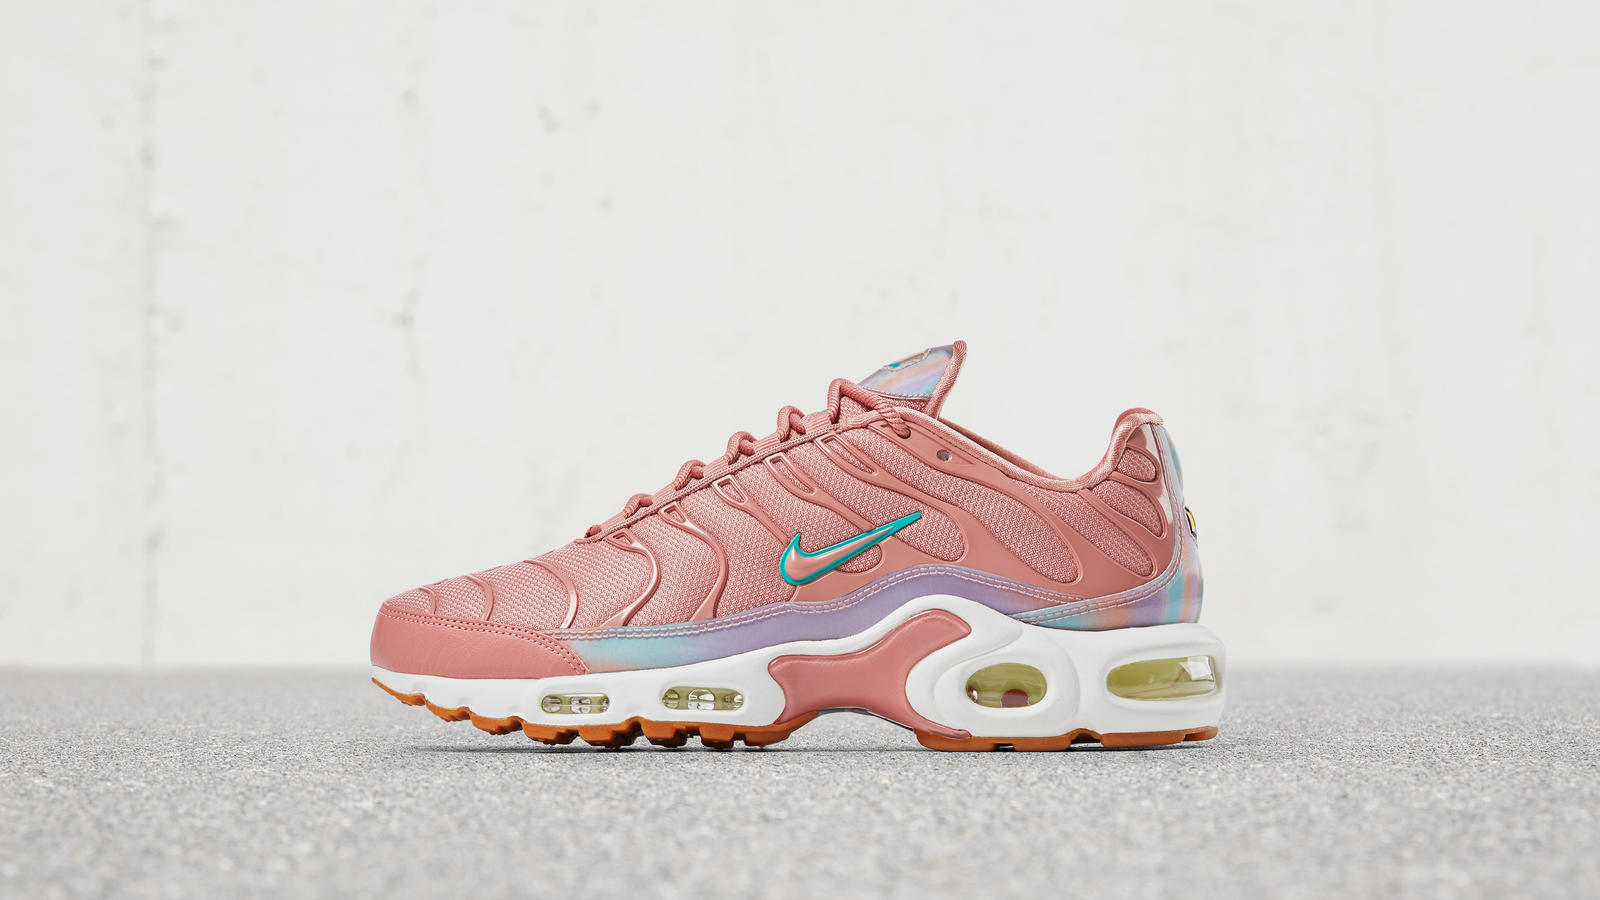 Air max plus holographic pink 1 hd 1600